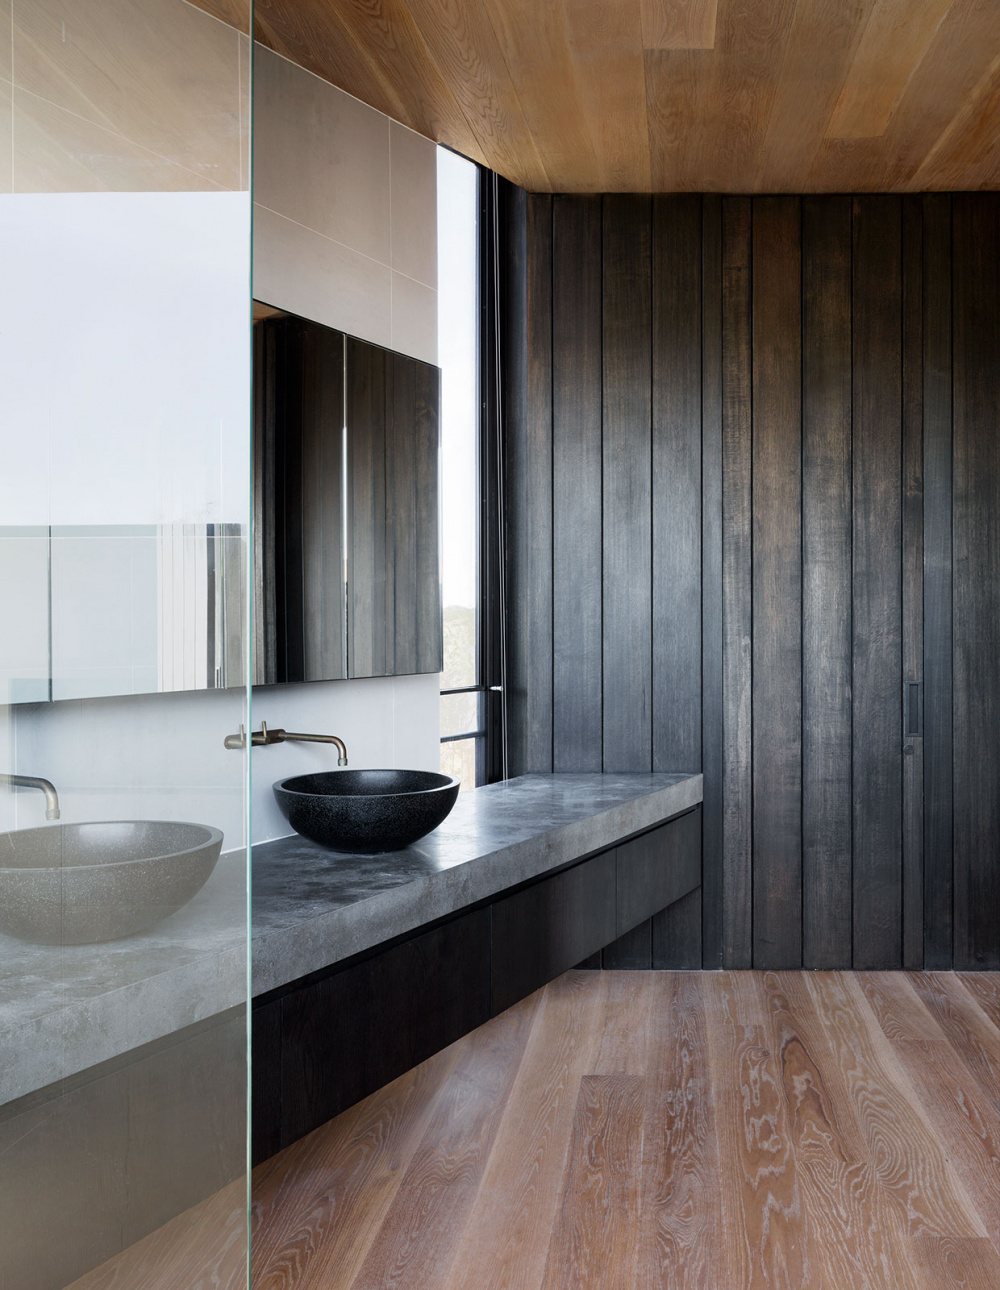 35 Dark Bathroom Ideas Industrial Inner City Modern And More